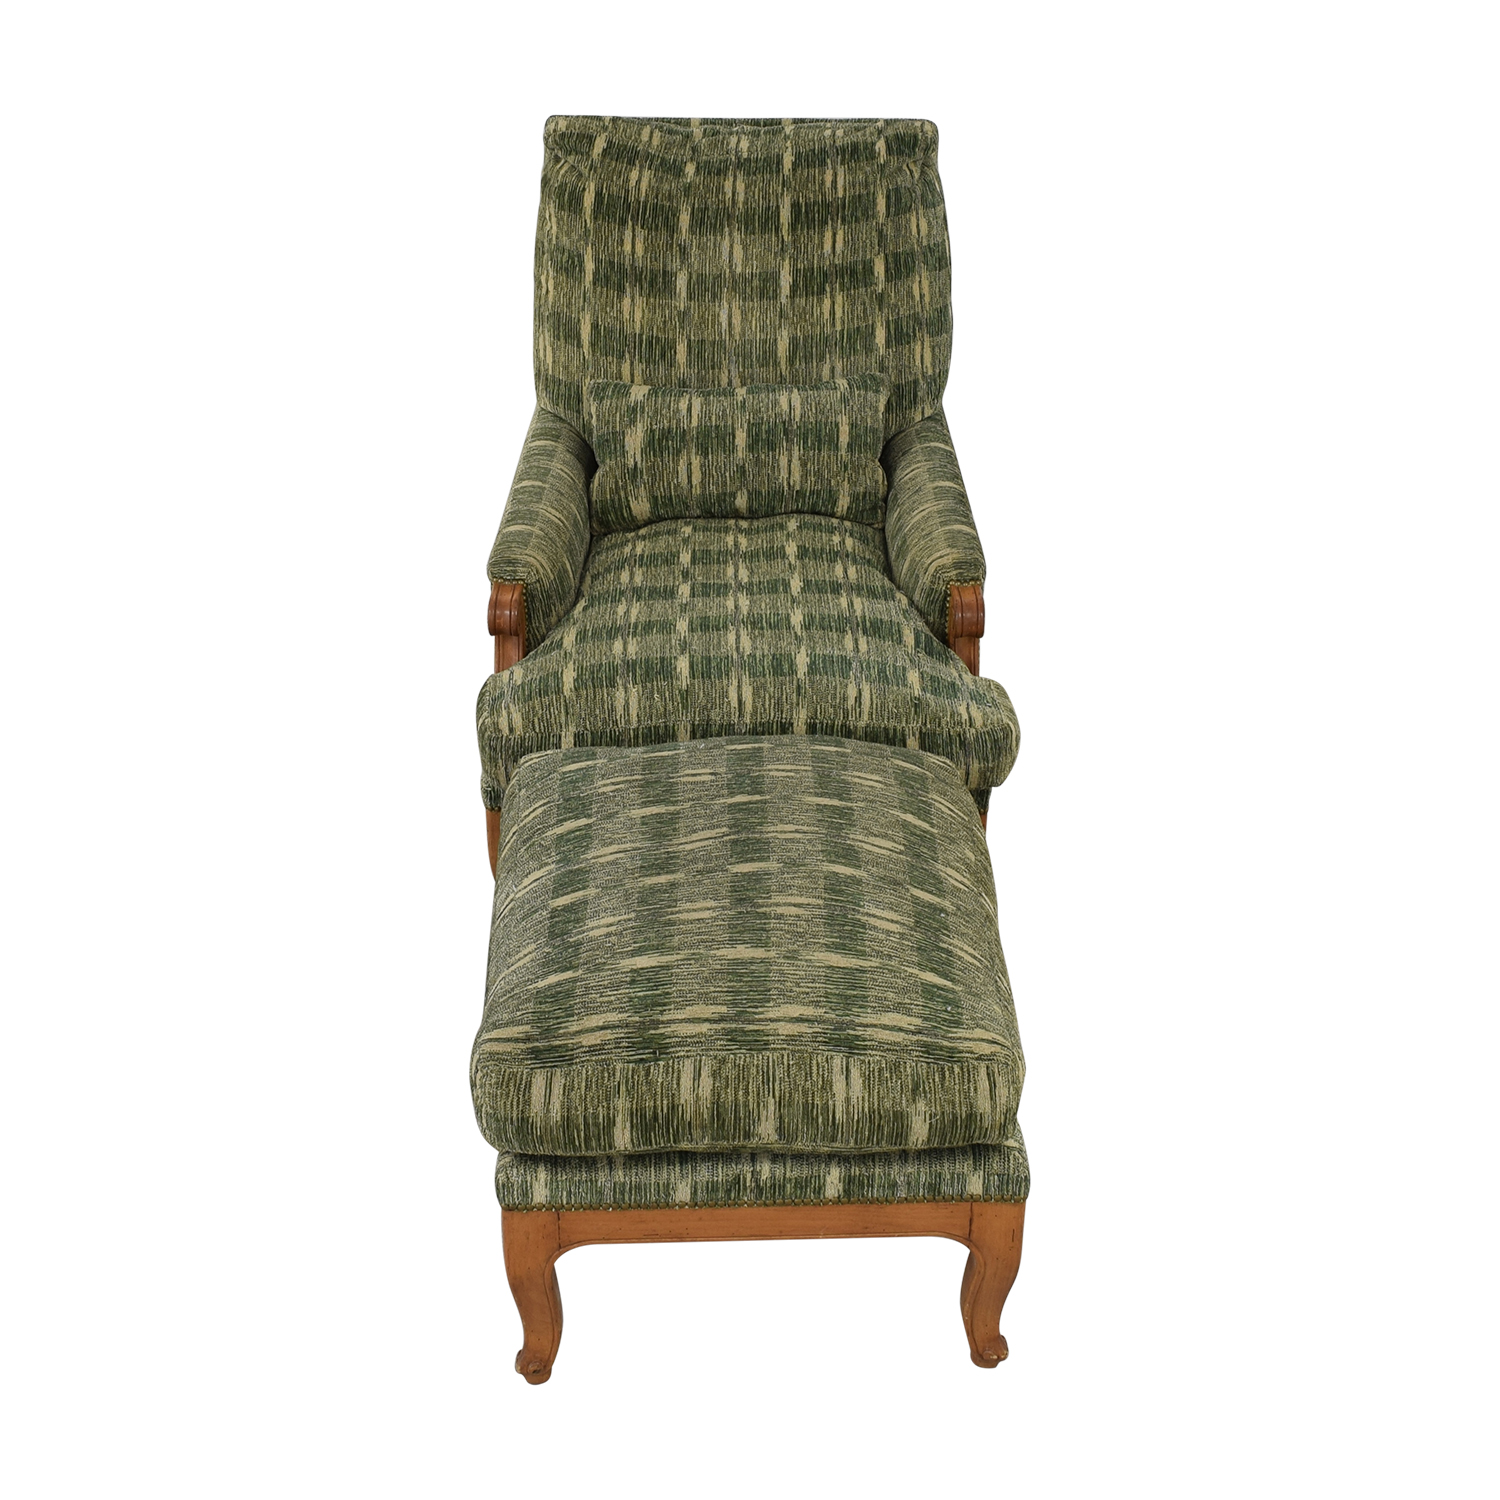 Rose Tarlow Rose Tarlow Overstuffed Chair with Ottoman Green